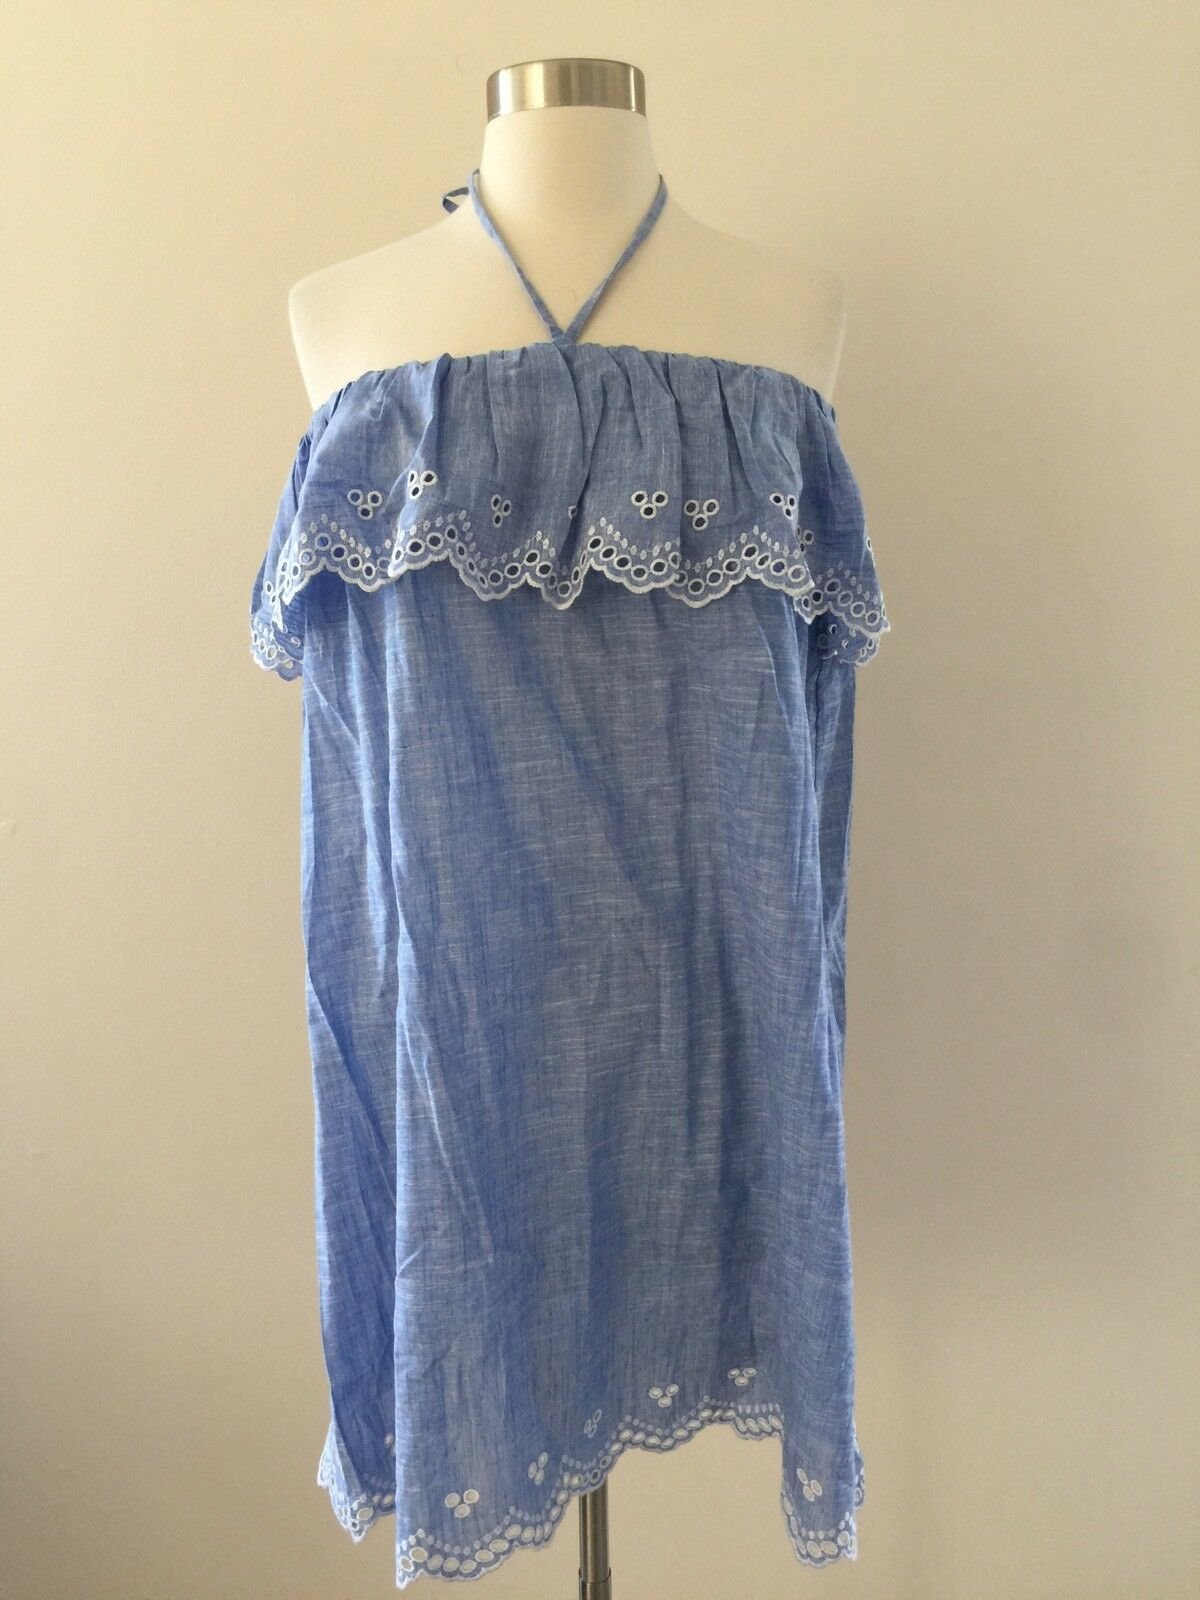 NWT  JCrew Eyelet Beach Dress Cover Up Sz M G7611 Blau